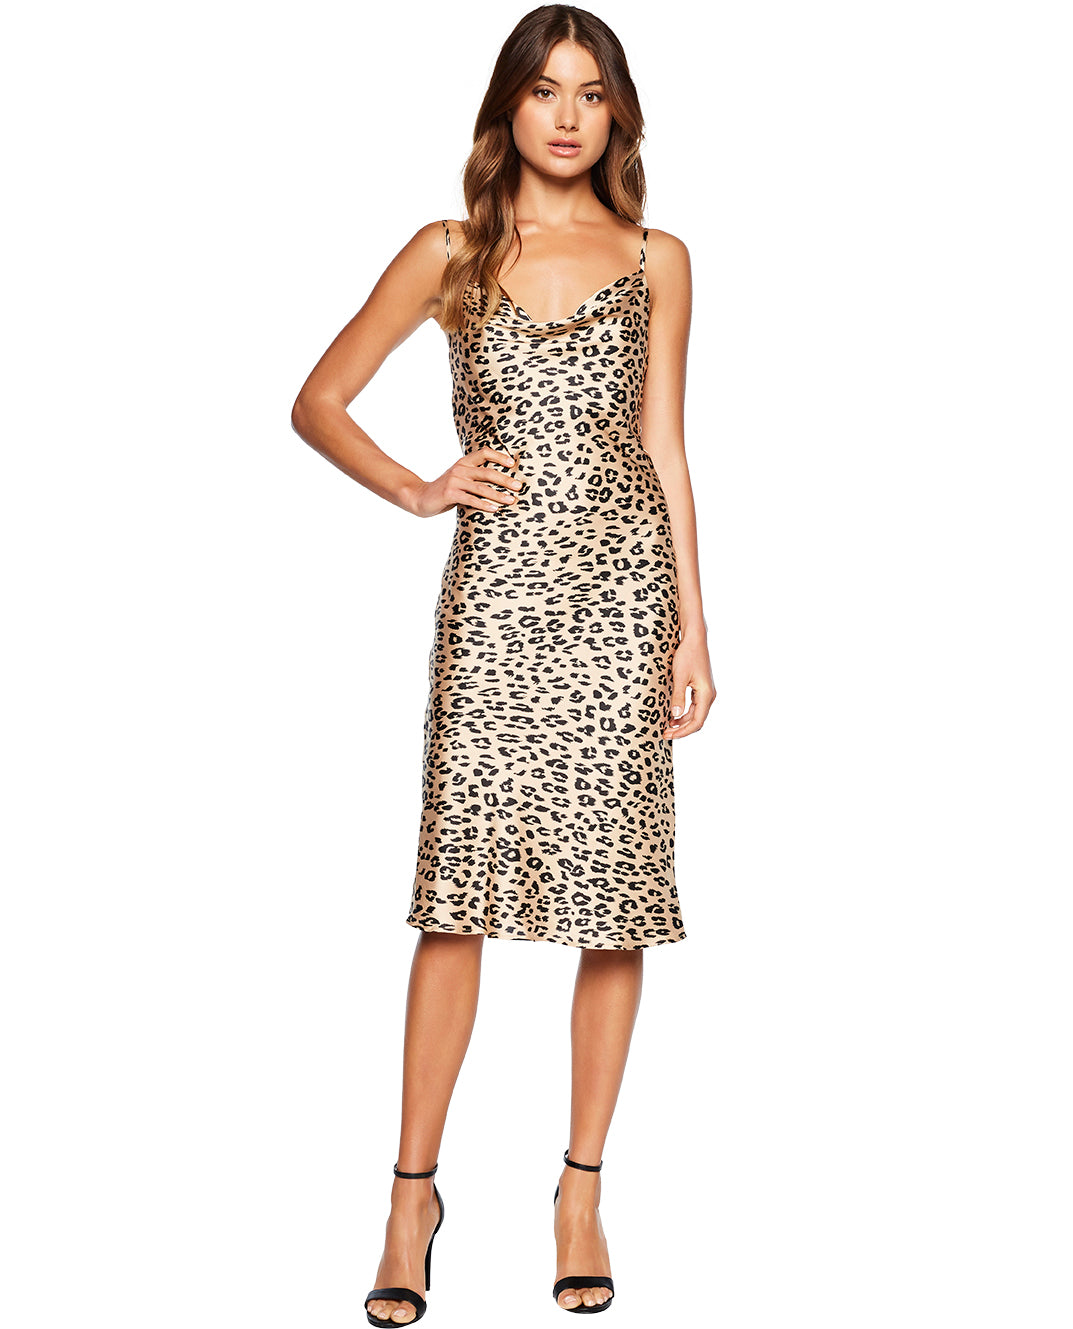 BARDOT LEOPARD PRINT SLIP DRESS